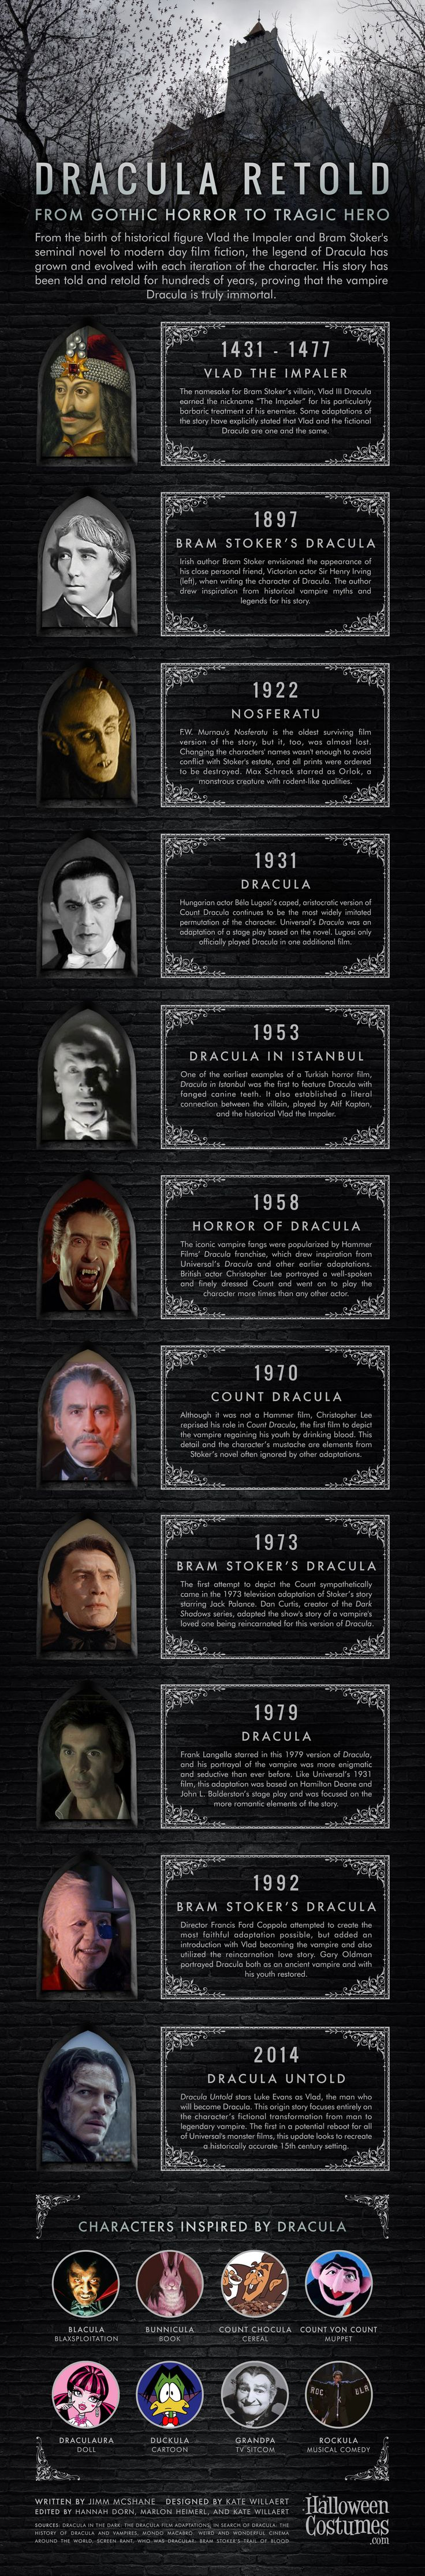 best ideas about tragic hero teaching history dracula retold from gothic horror to tragic hero